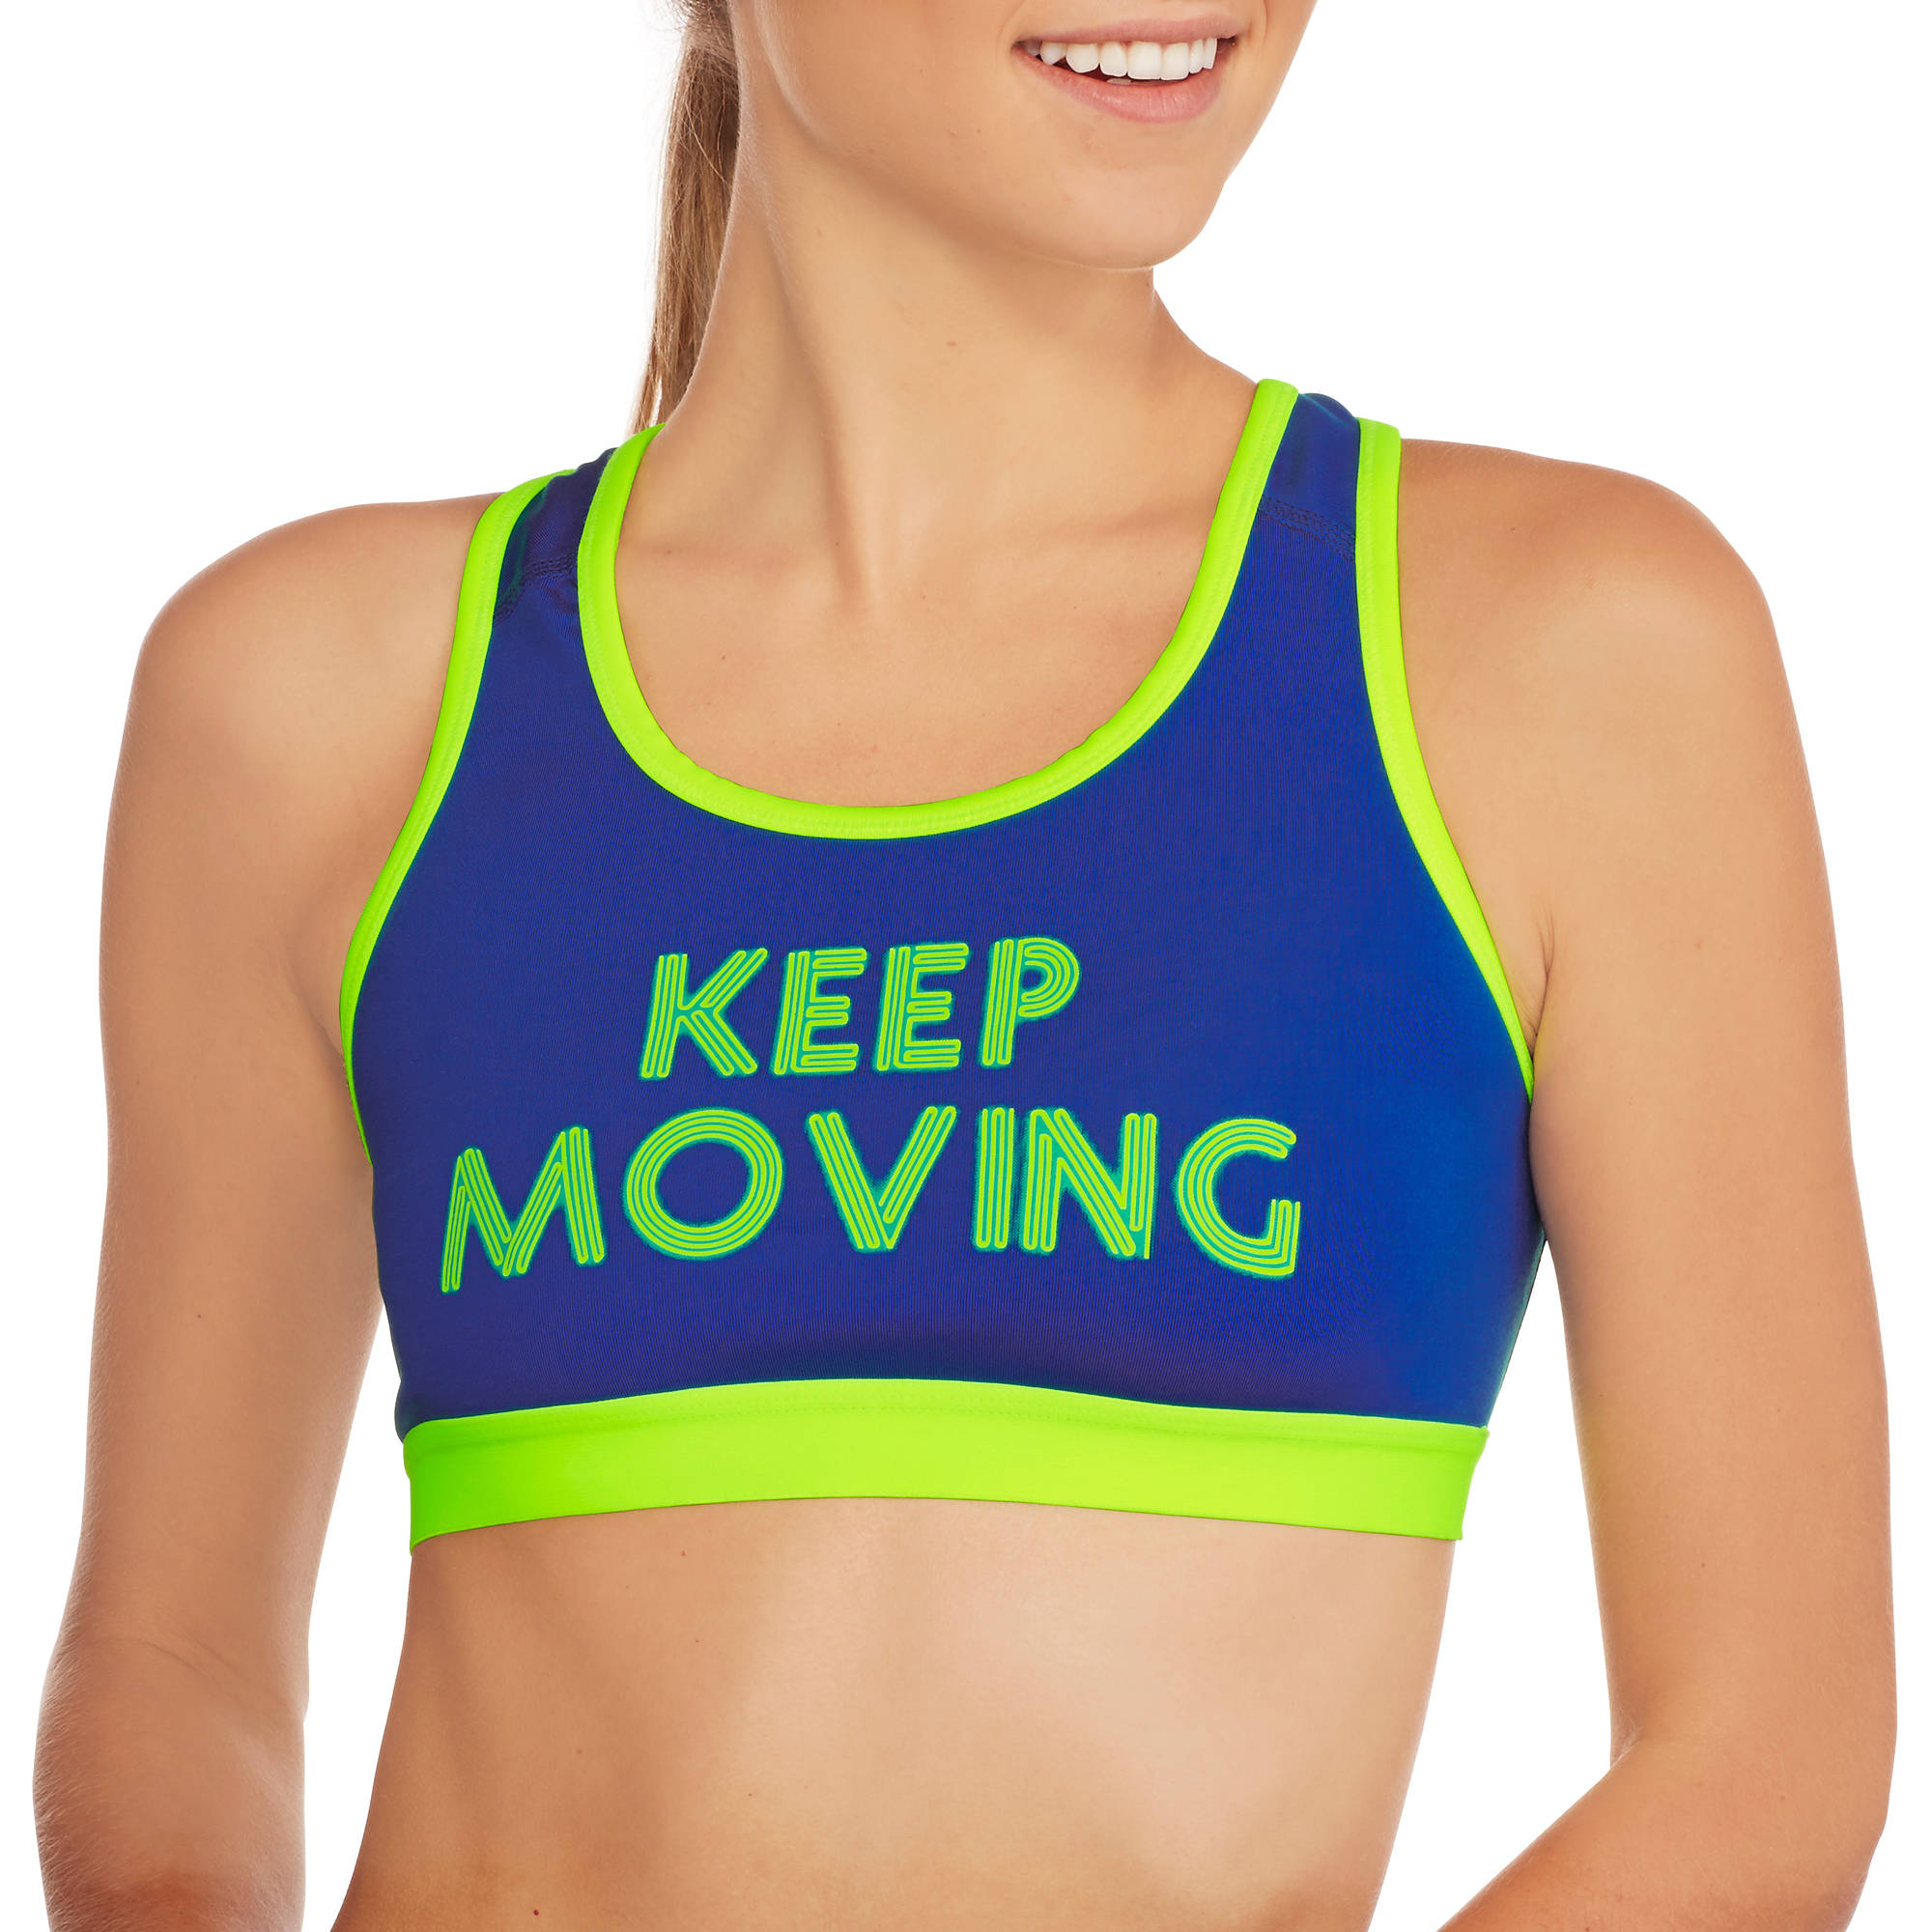 Danskin Now Women's Fitspiration Light Impact Sports Bra